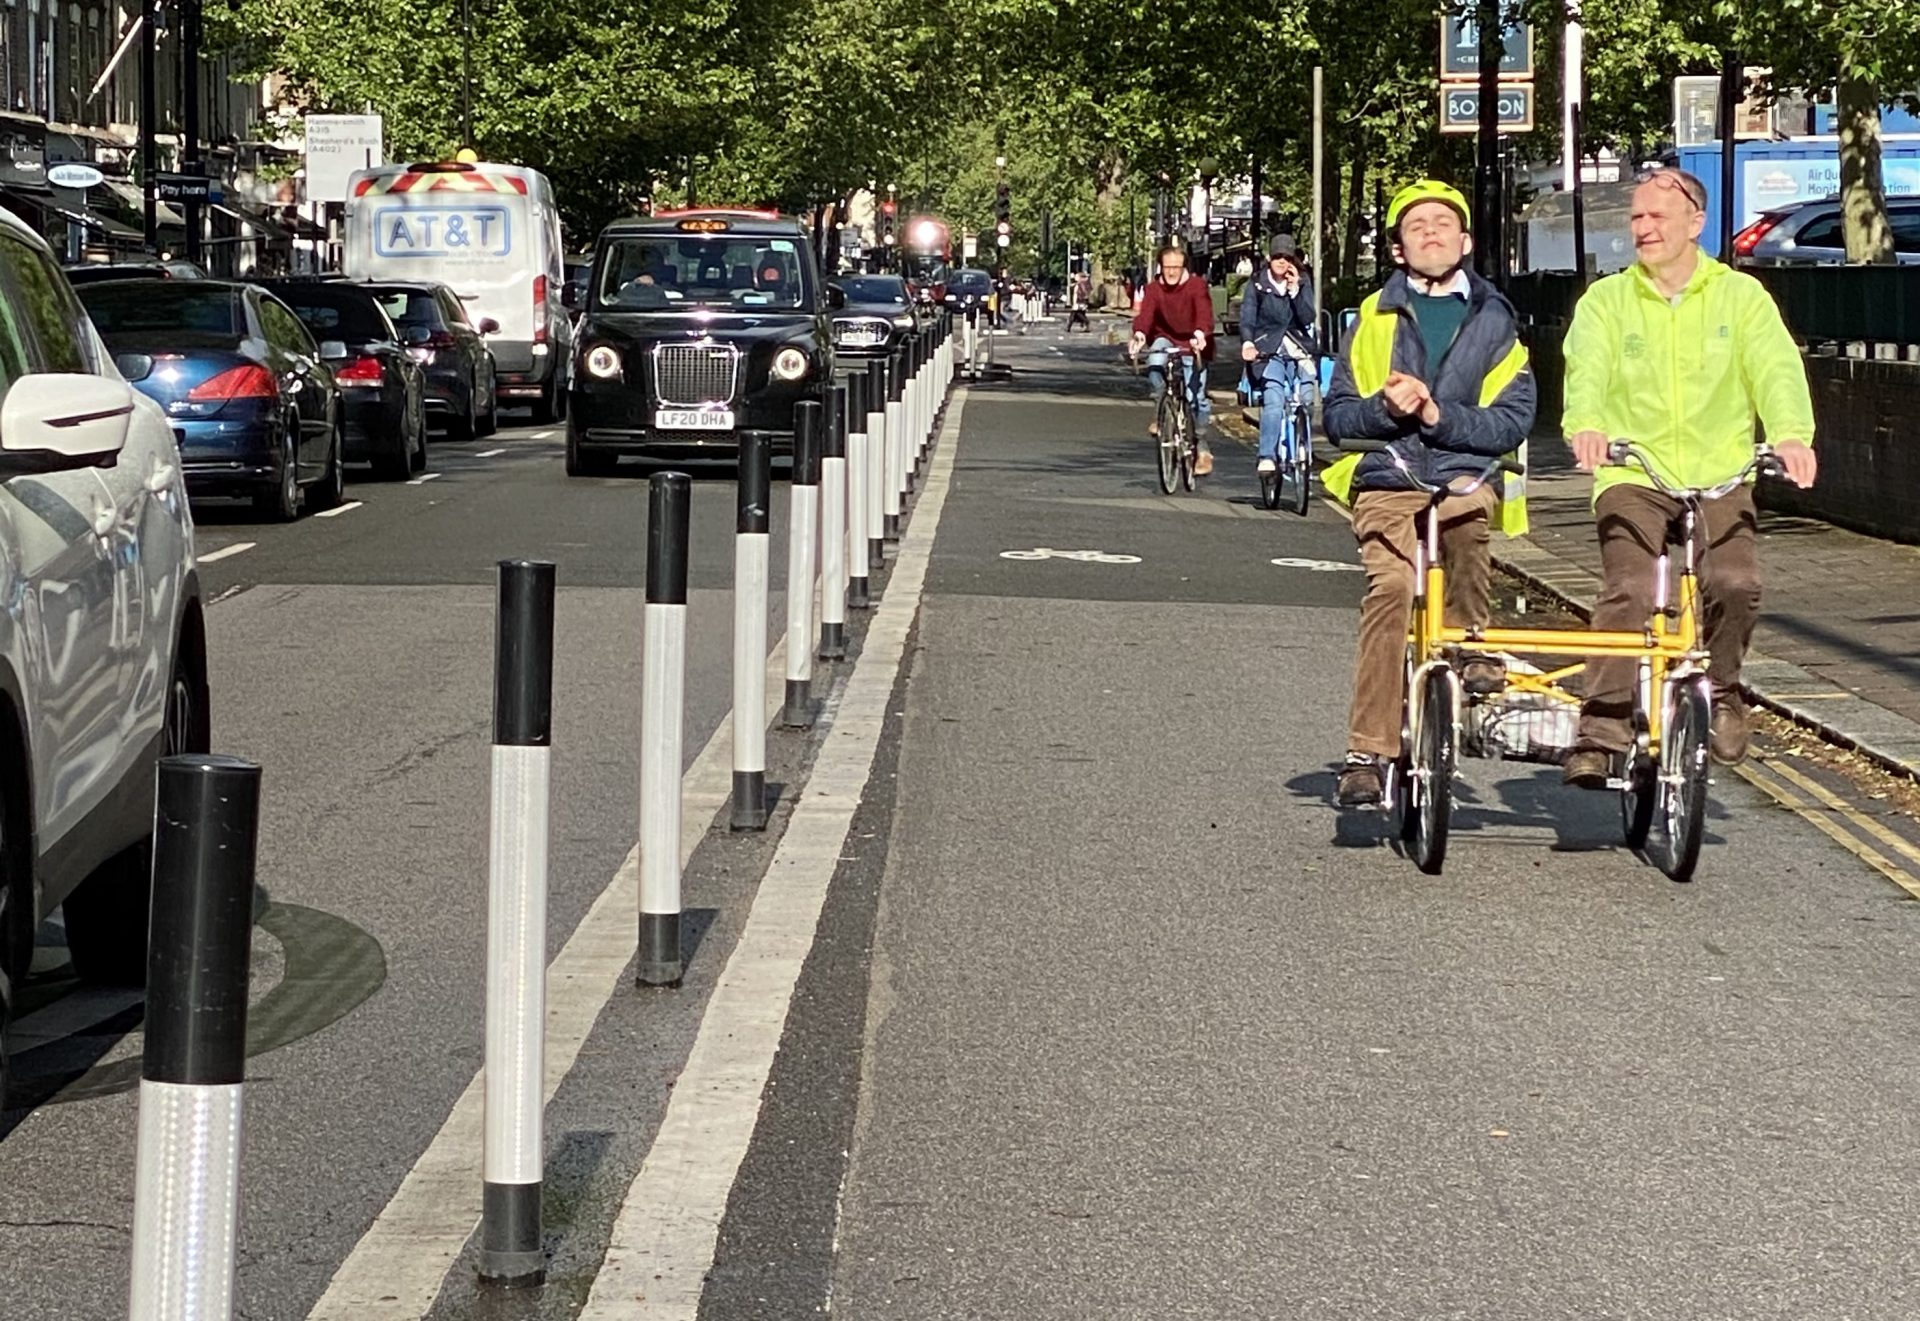 Caring for cyclists, caring for streets